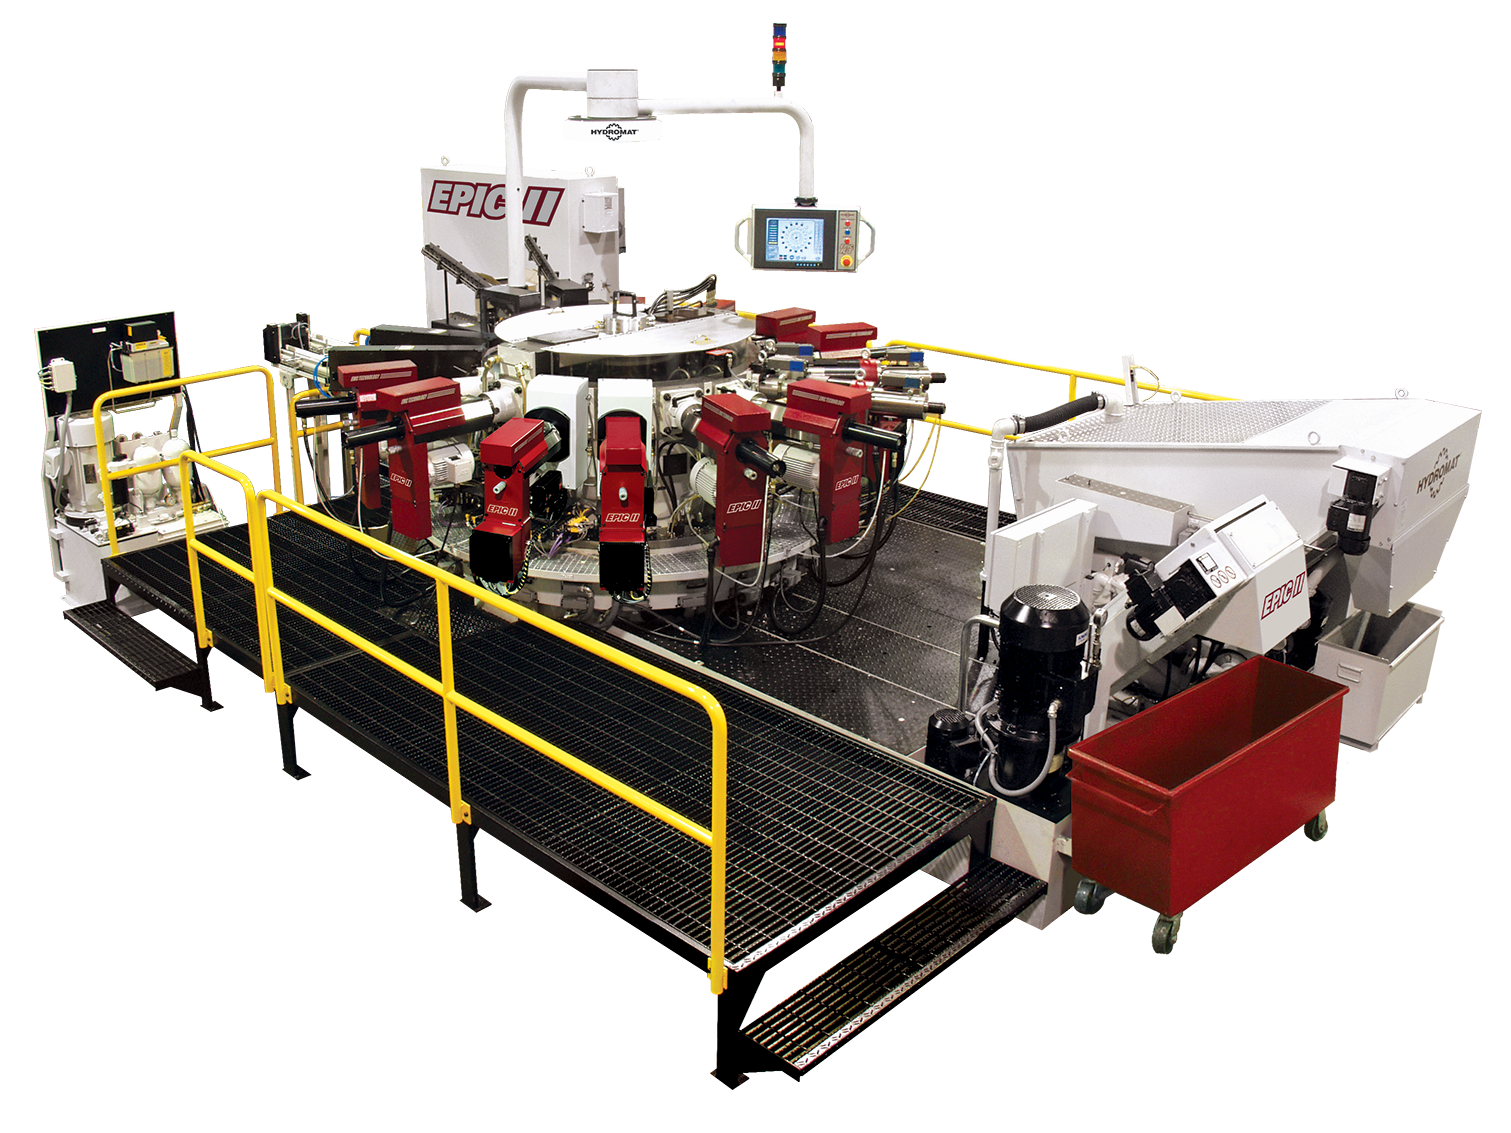 Hydromat EPIC II Indexing Chuck Rotary Transfer Machine